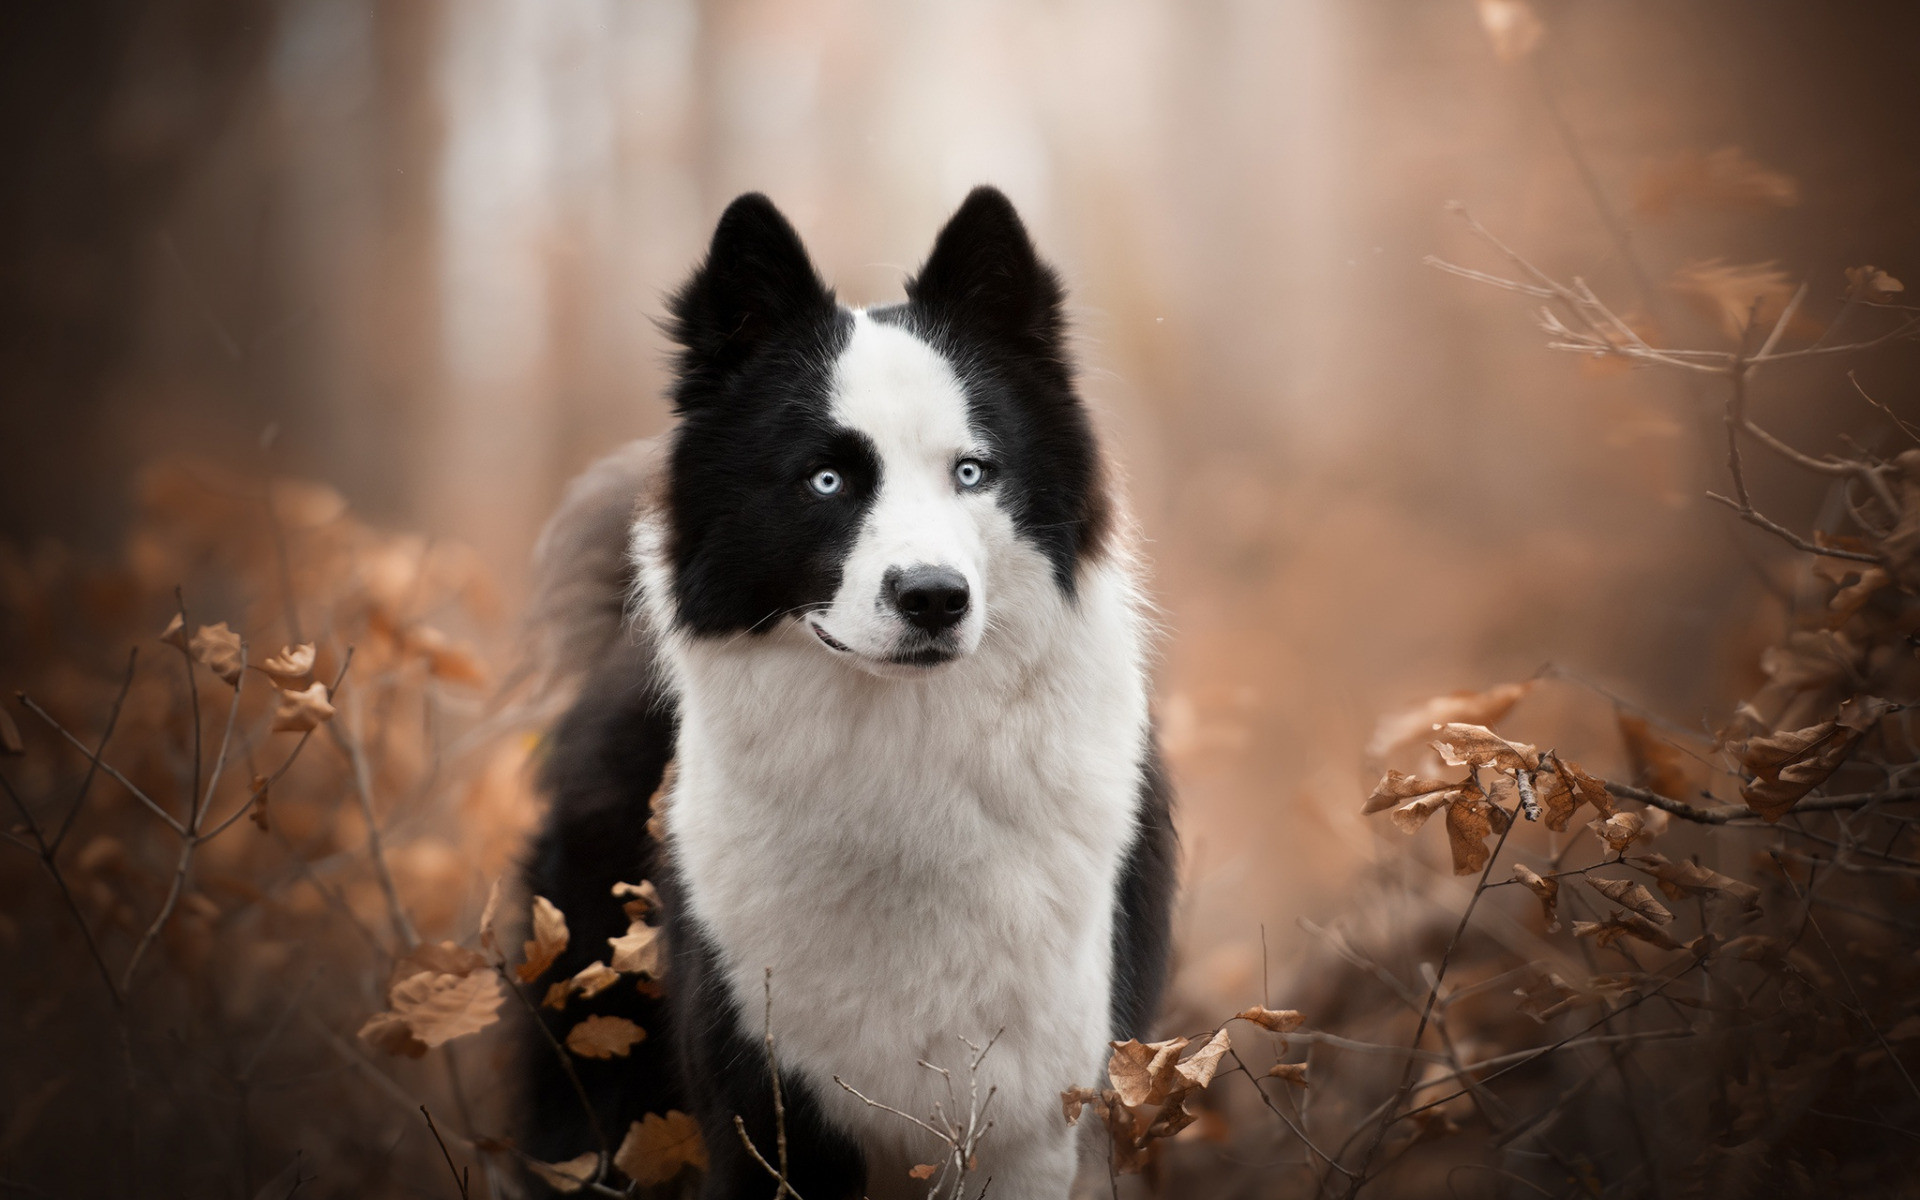 border-collie-black-and-white-fluffy-dog-pets-cute-animals-forest